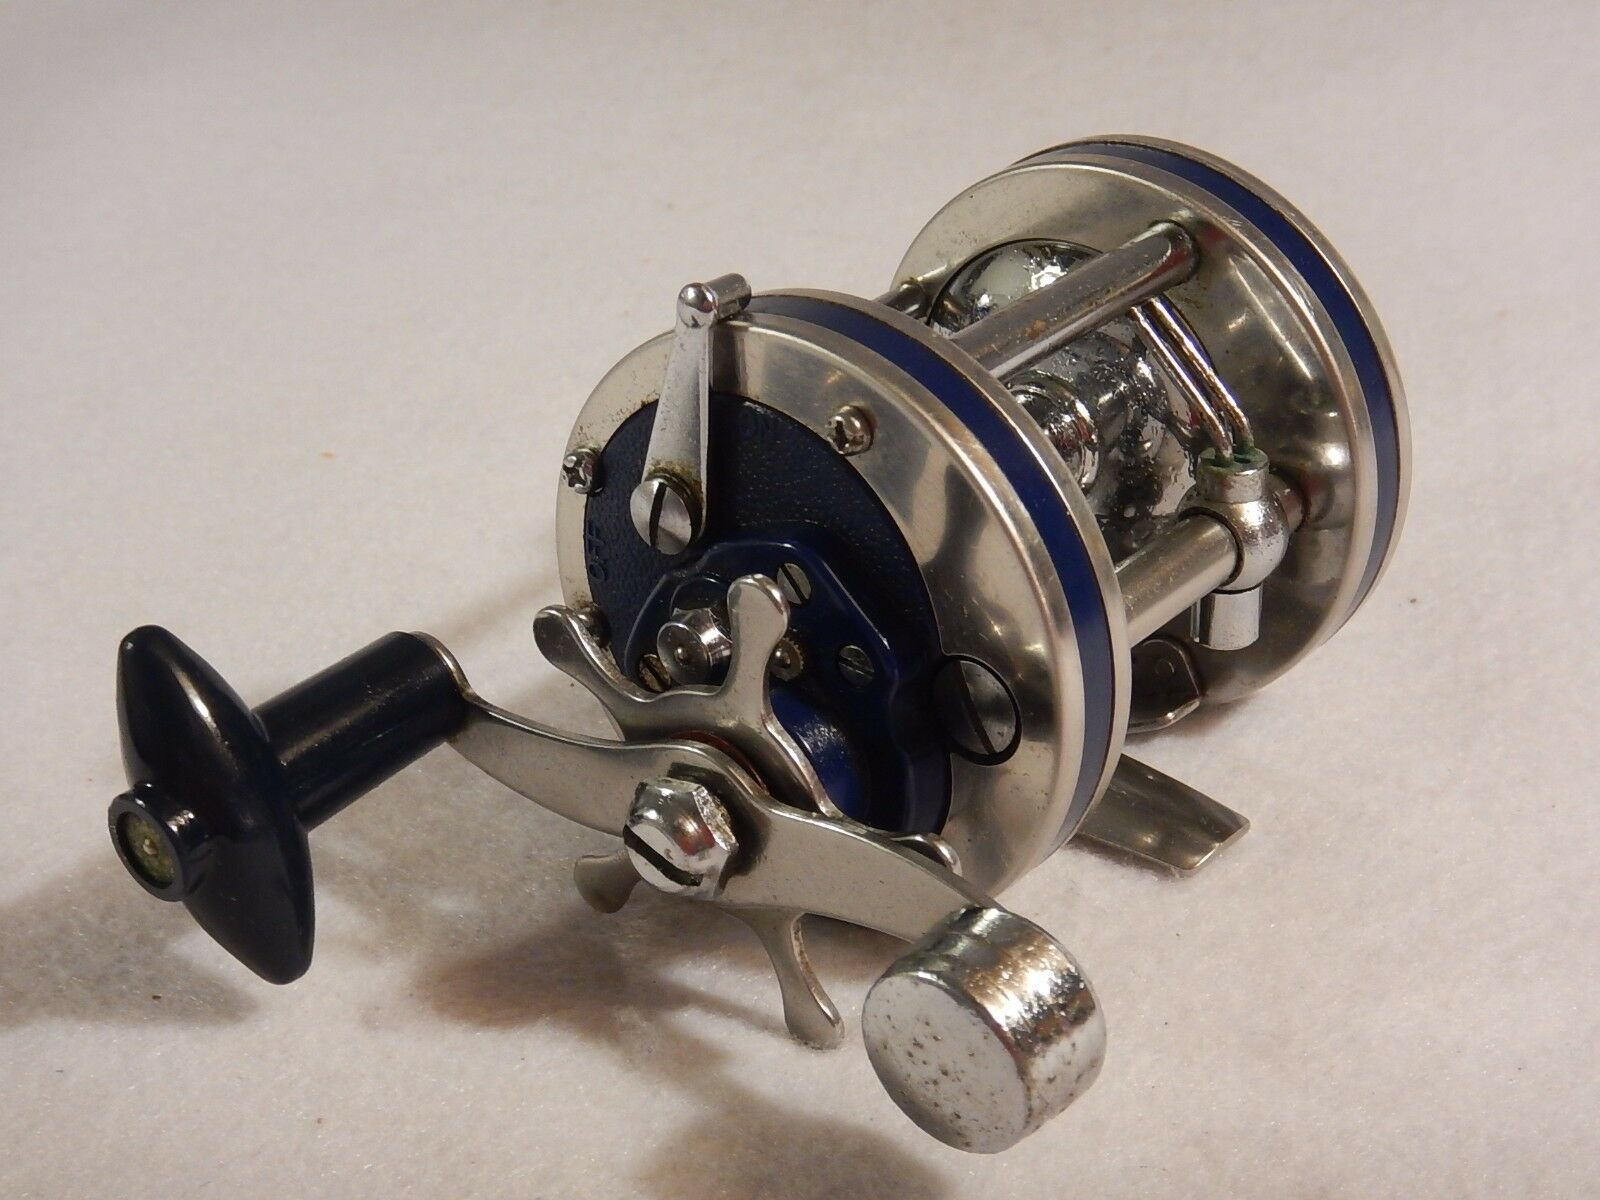 Vintage bluee Olympic Dolphin 621-LW Top Quality Bait Cast Reel Very Nice Cond